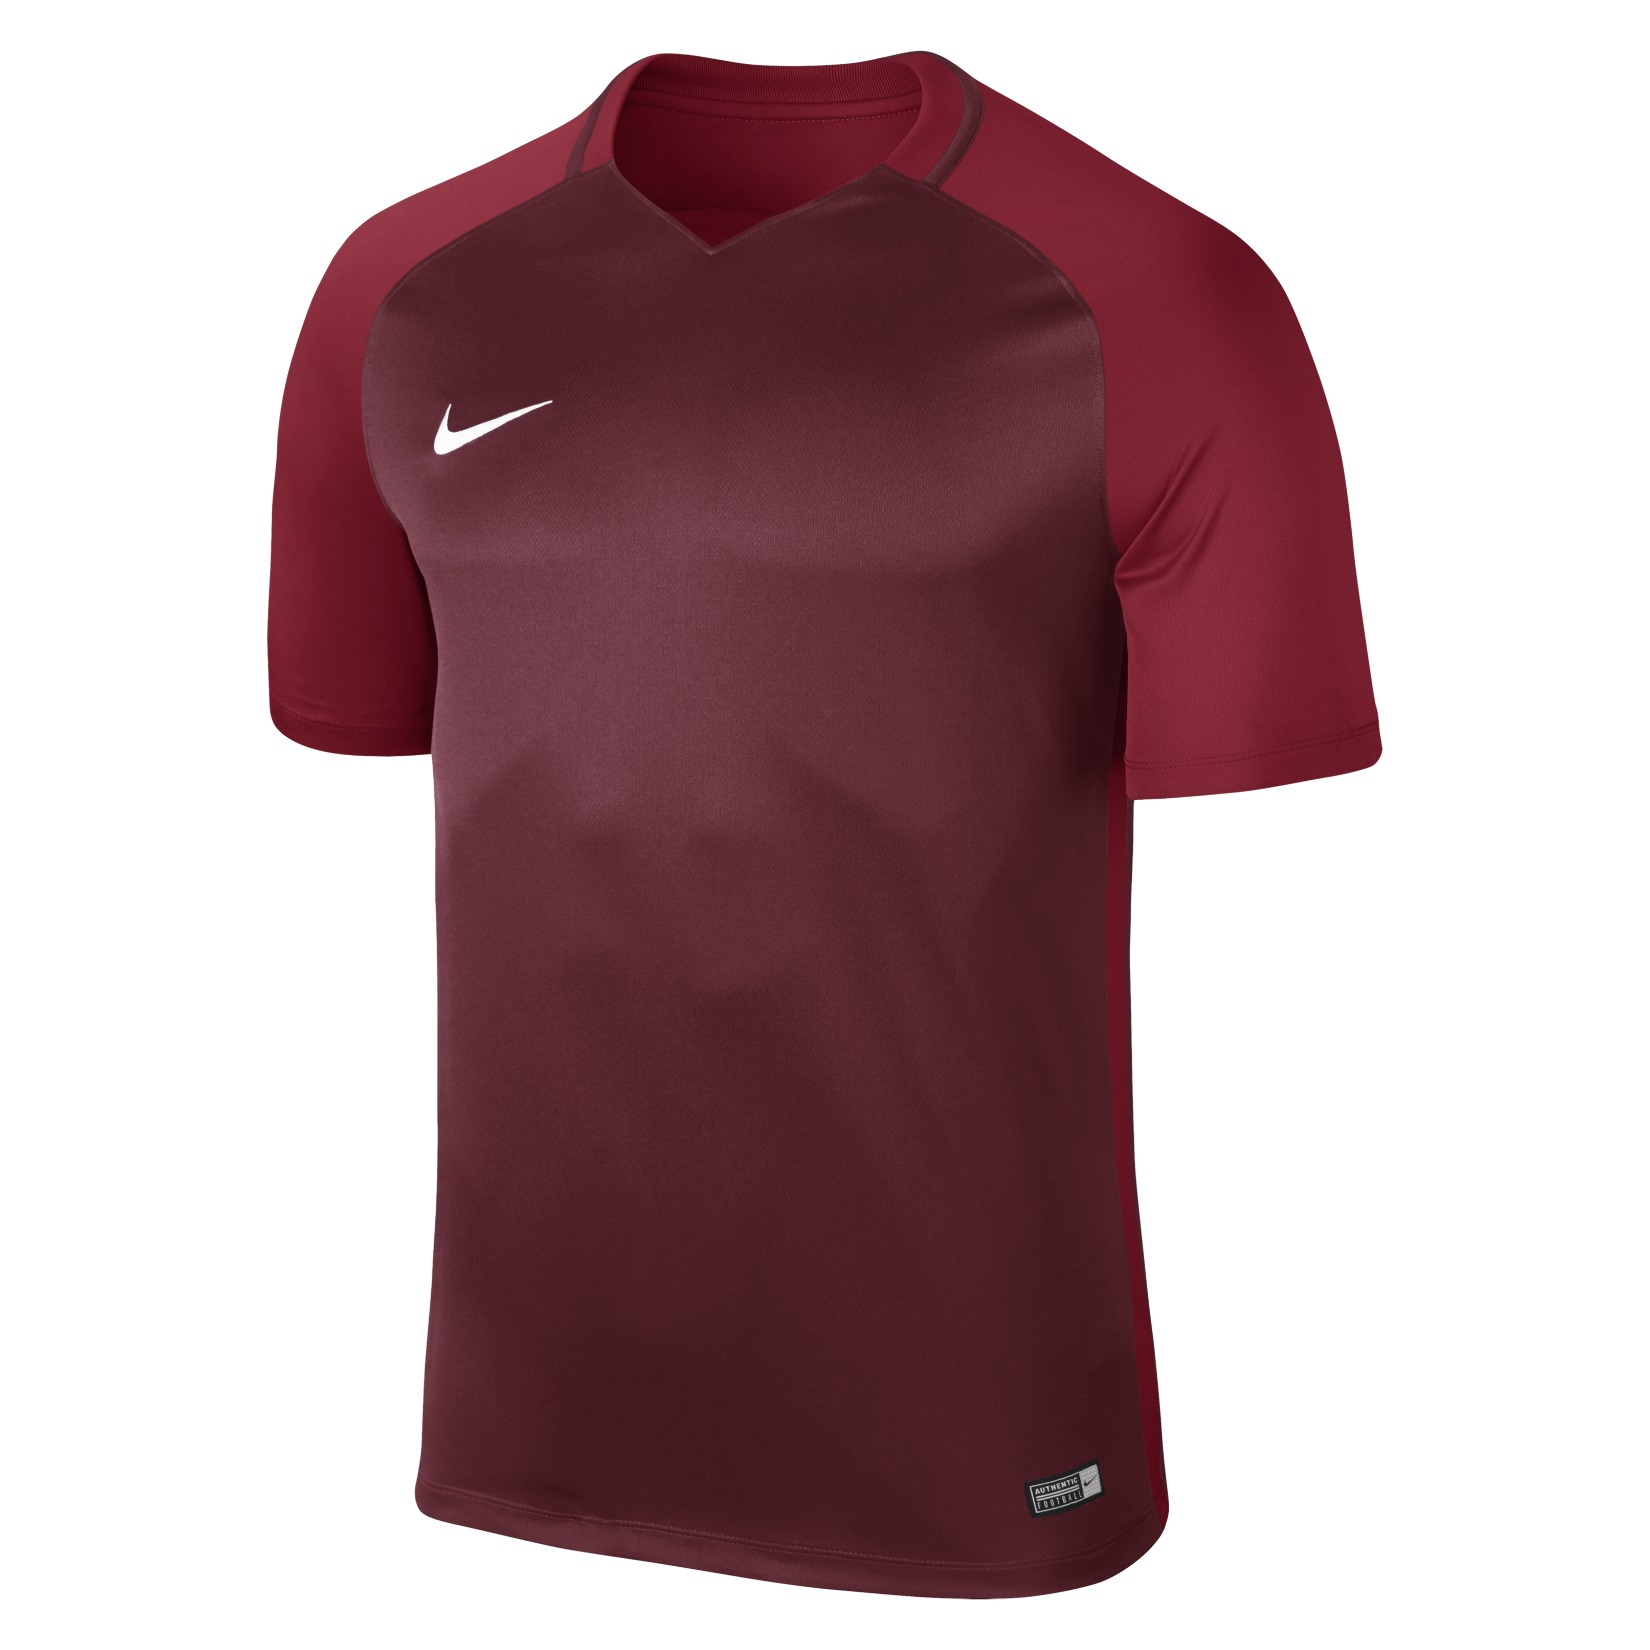 Nike Trophy III Short Sleeve Shirt Team Red-Gym Red-Gym Red-White